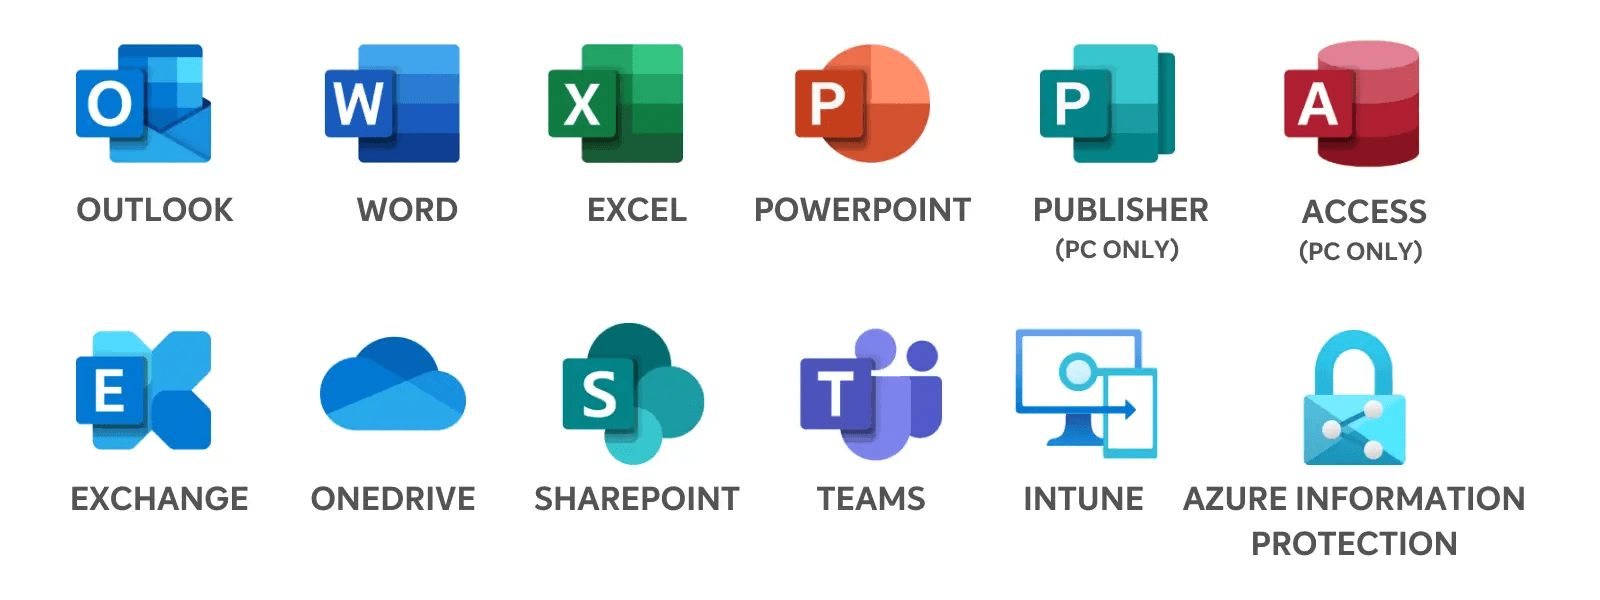 Managed IT Service Icons